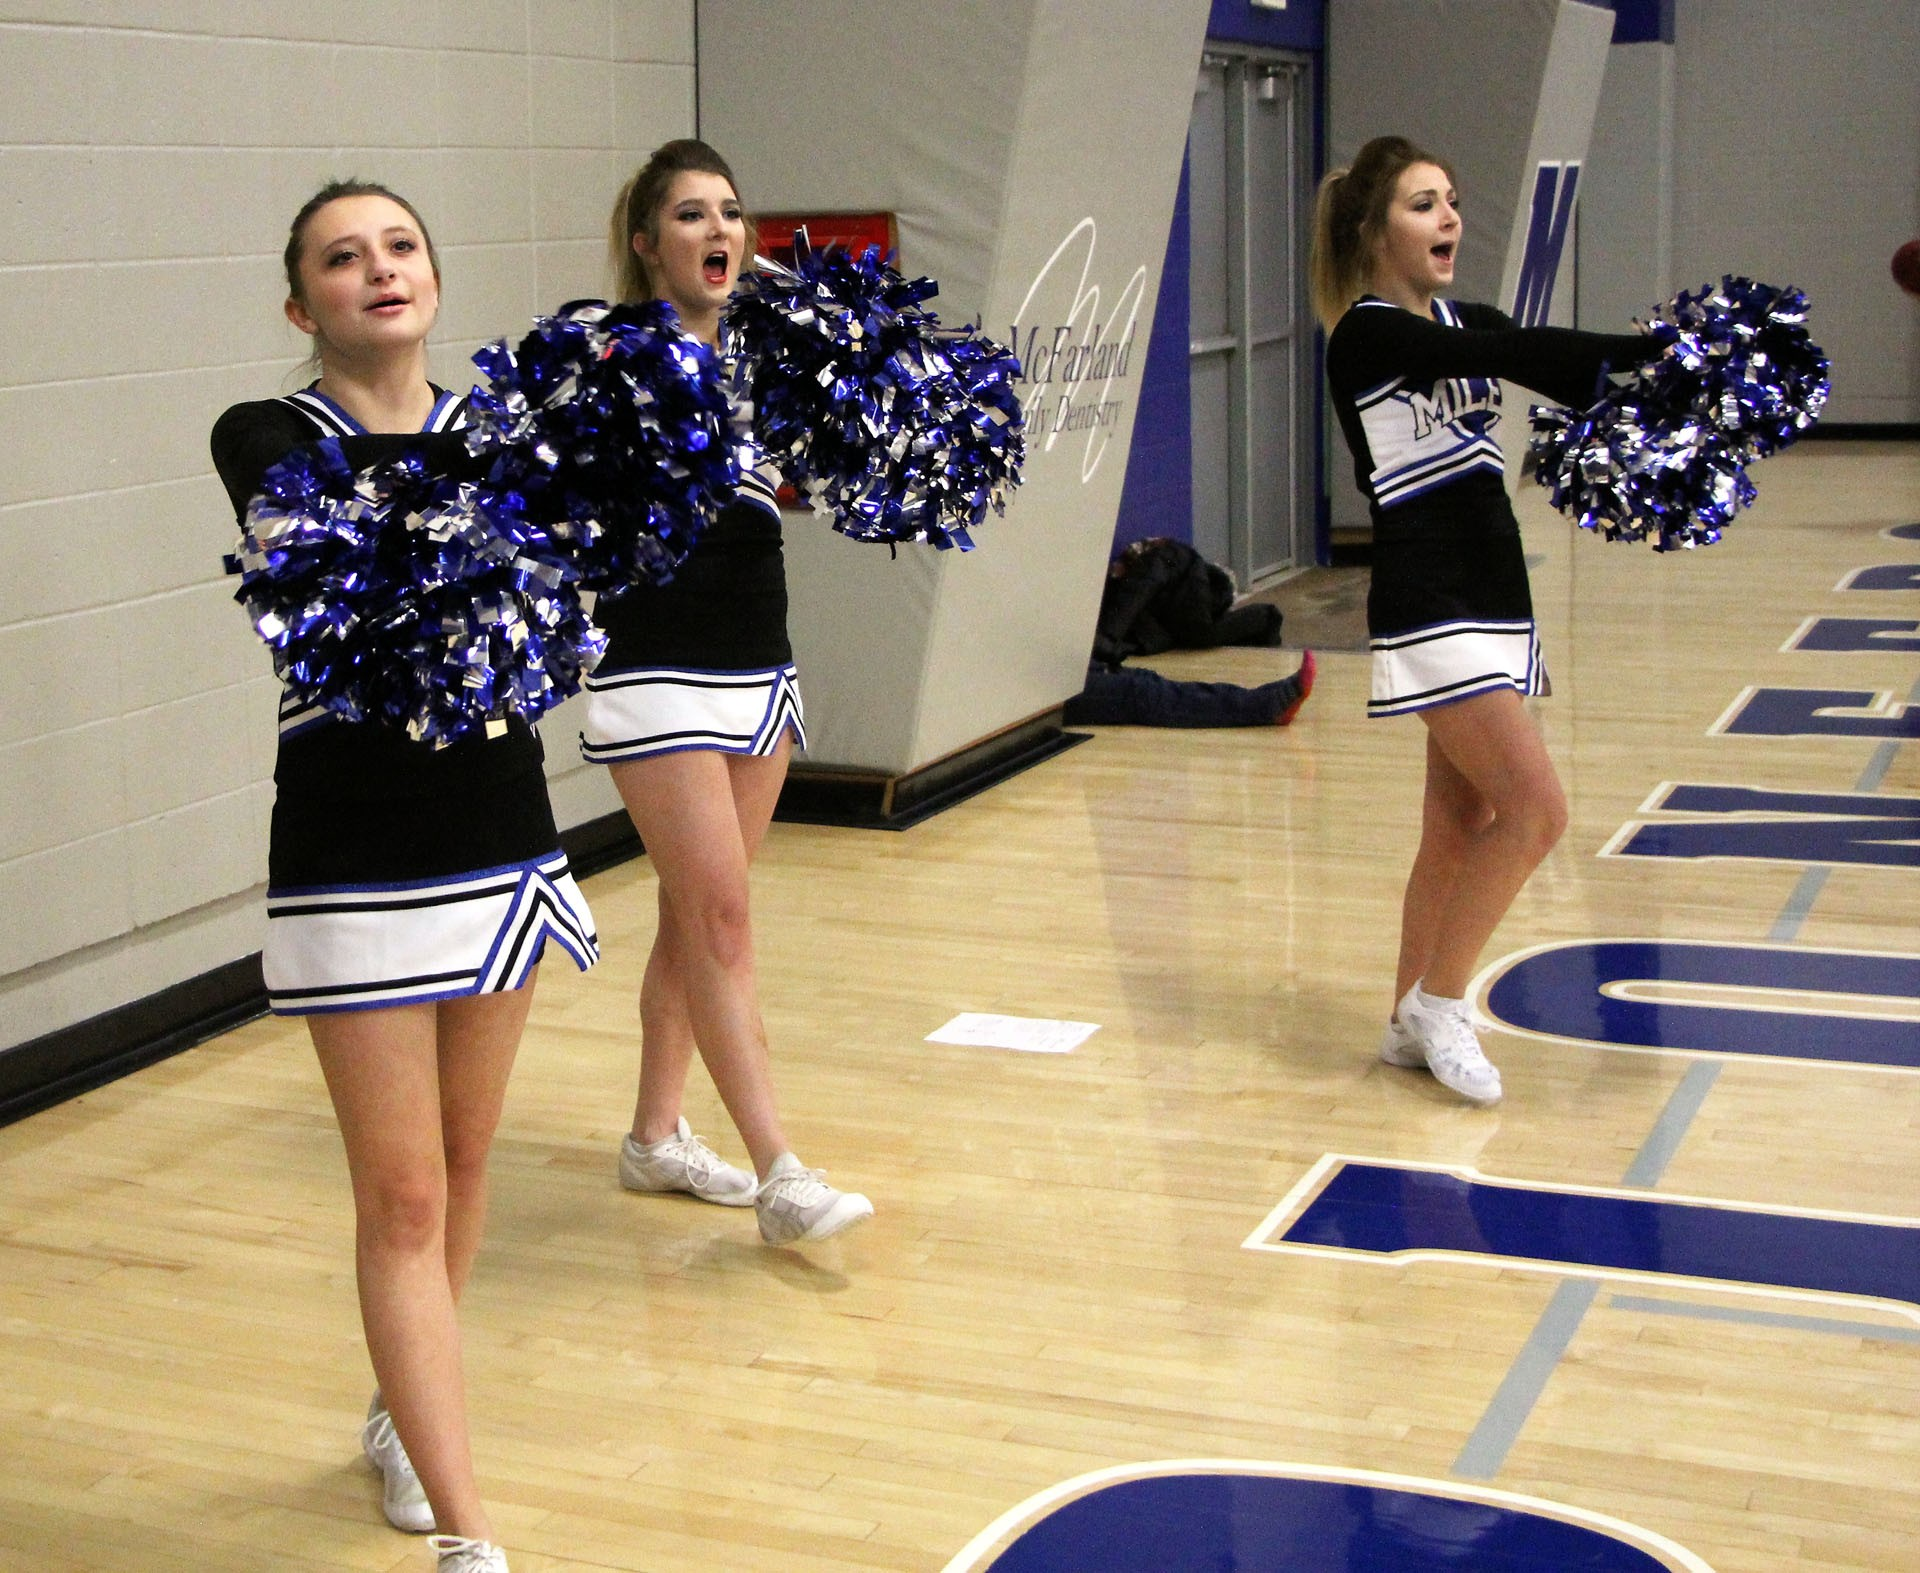 Shyla Greer, Ashley Becker, and Mariah Amsbury energize the crowd during a Pioneer game in January.STAR PHOTO/Sharon Moore